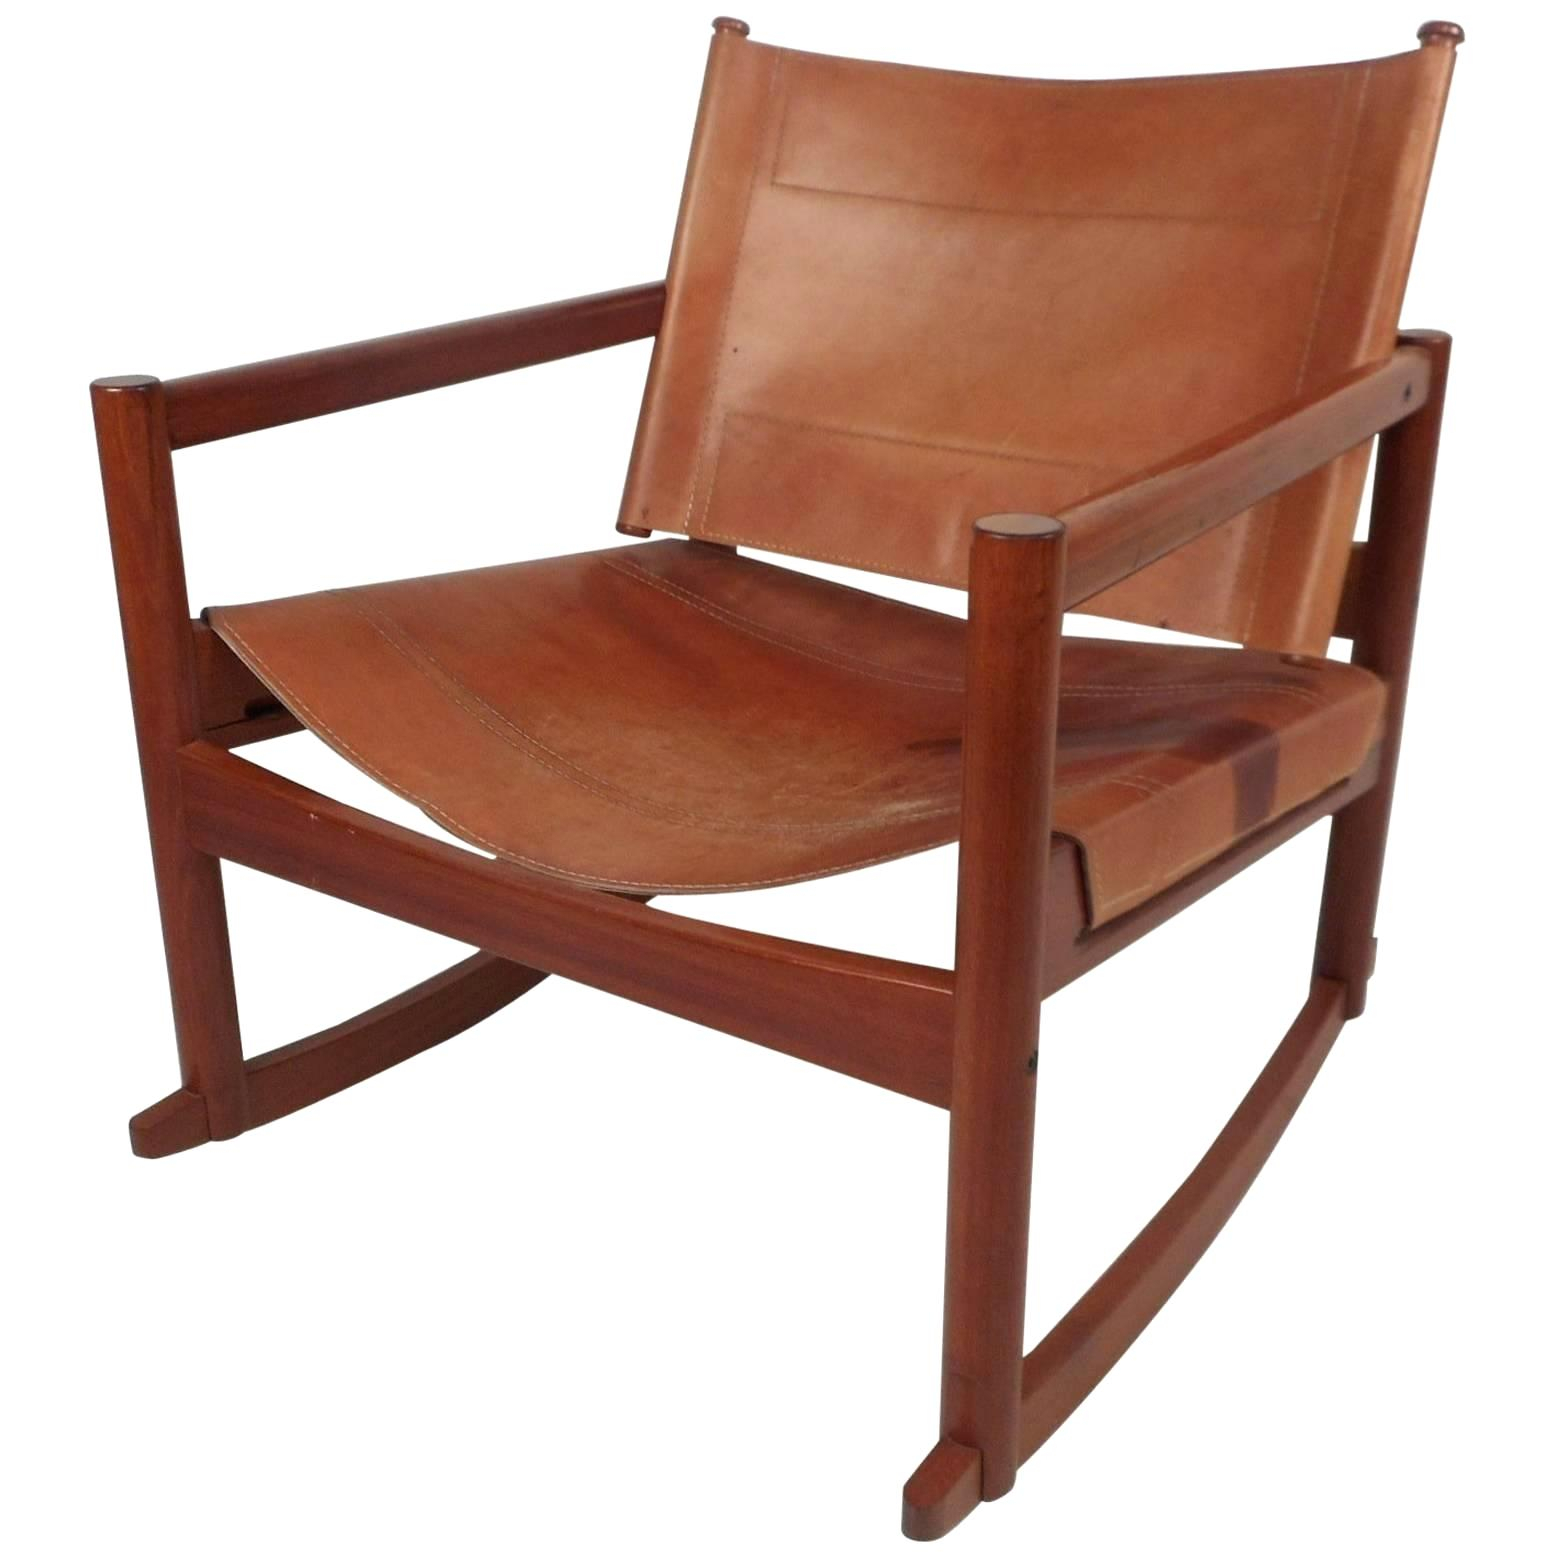 Rocking Leather Chair – Muangfan Regarding Faux Leather Upholstered Wooden Rocking Chairs With Looped Arms, Brown (View 16 of 20)